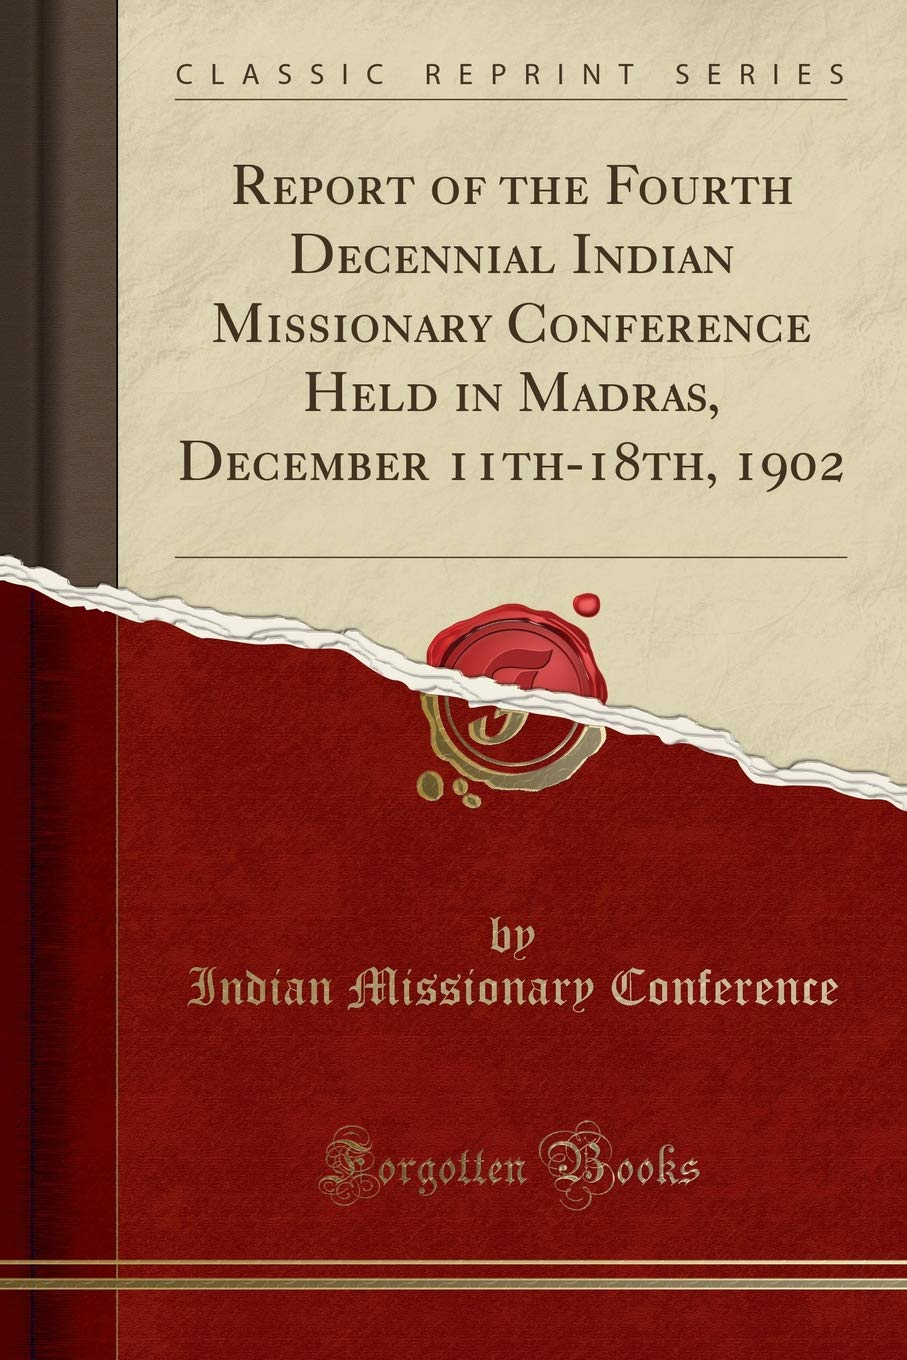 Download Report of the Fourth Decennial Indian Missionary Conference Held in Madras, December 11th-18th, 1902 (Classic Reprint) pdf epub